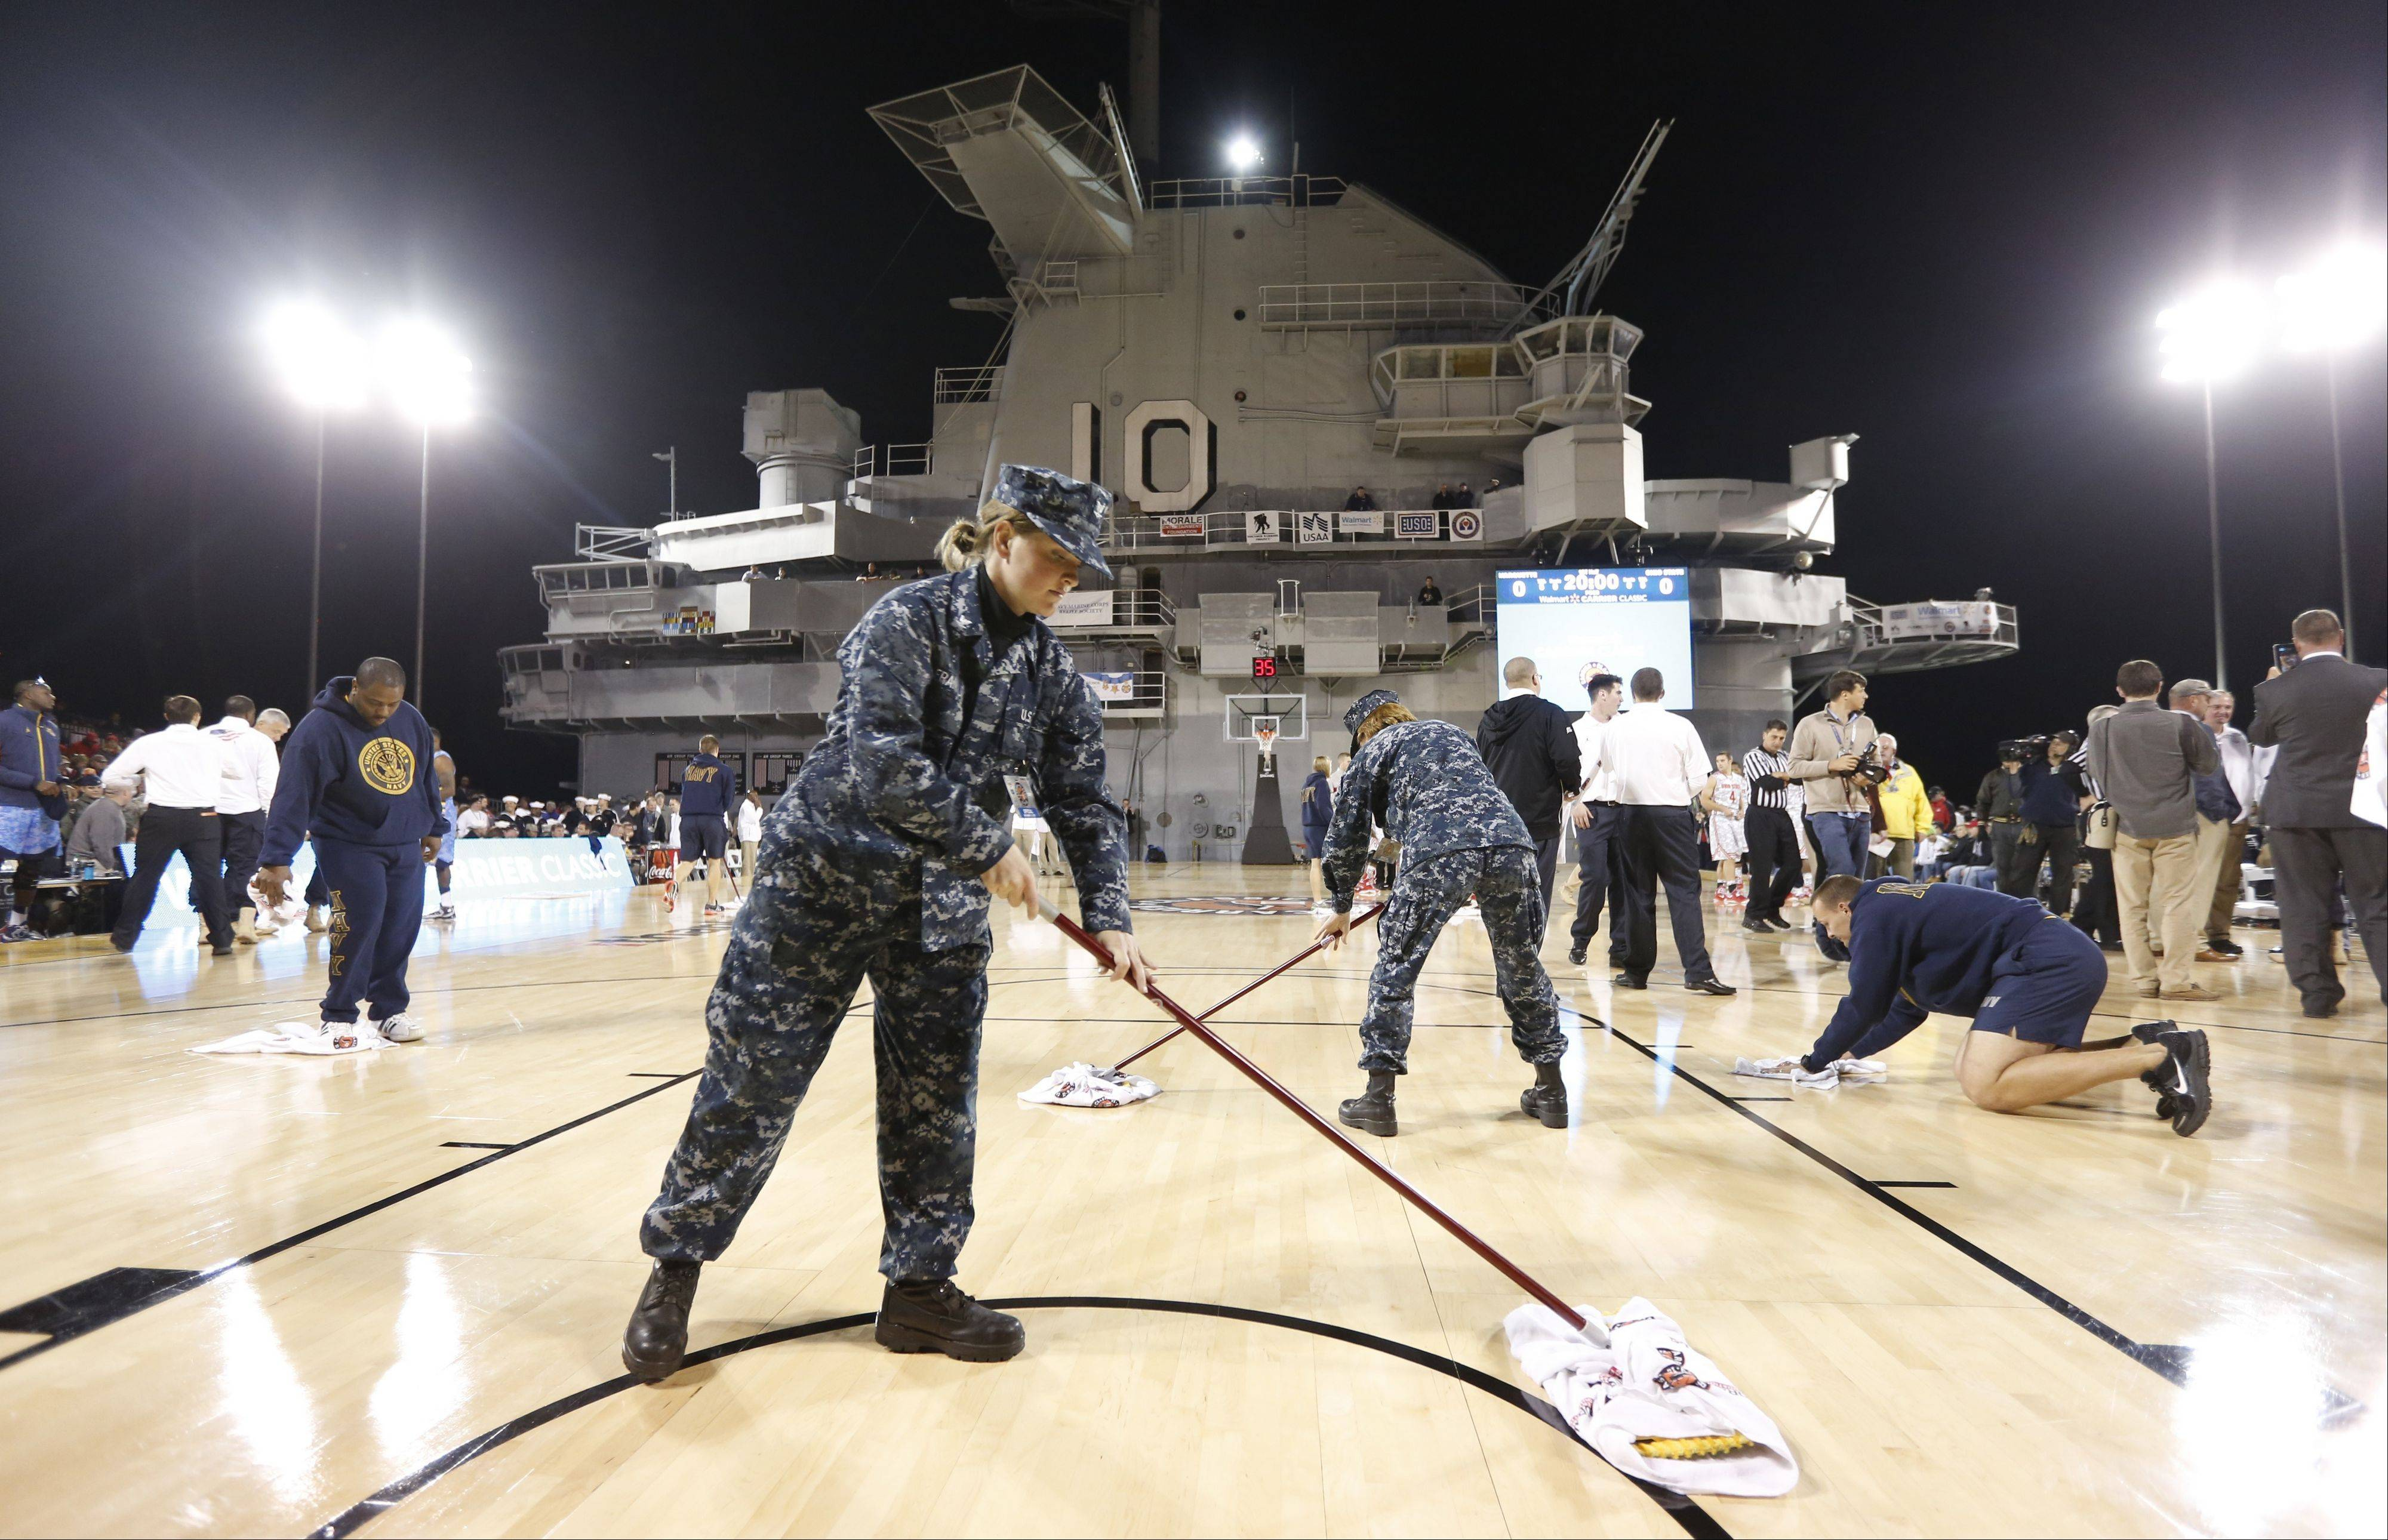 Military personnel and volunteers wipe off condensation in an attempt to dry the damp court Friday before the start of the game between Ohio Sate and Marquette in the Carrier Classic aboard the USS Yorktown in Mount Pleasant, S.C. Officials called off the game because of the damp court.